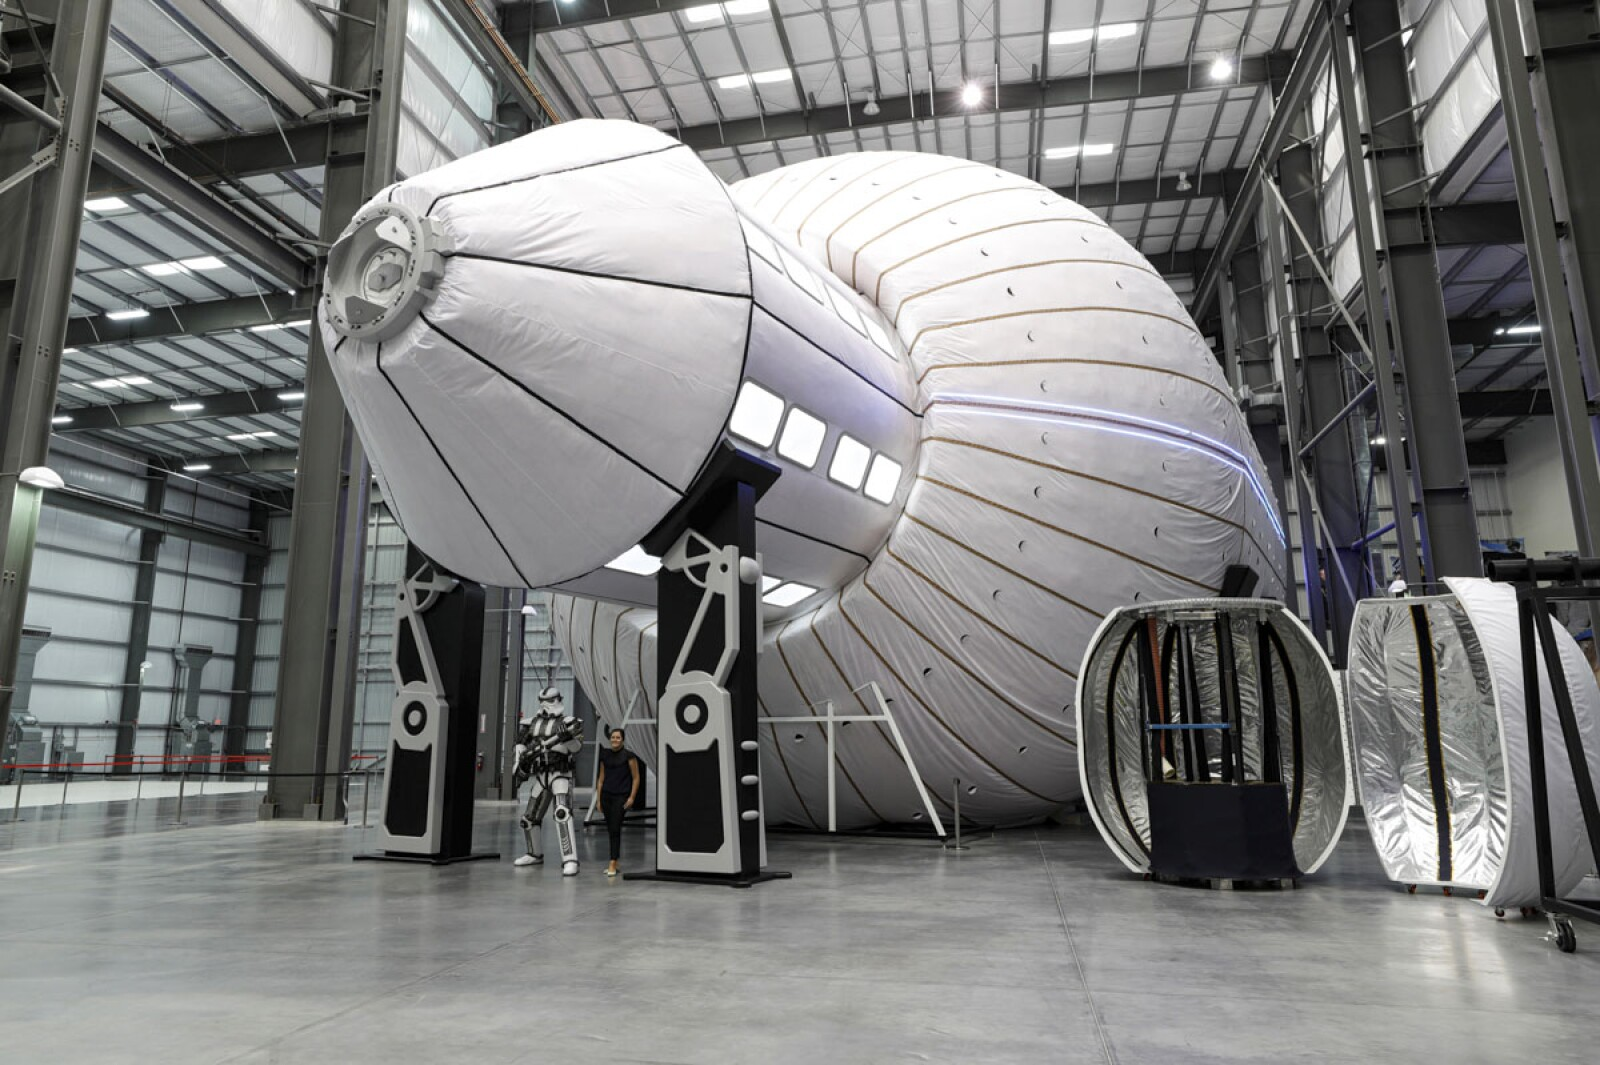 Olympus, a conceptual design for a large space station with 2,250 cubic meters of volume, is displayed during a tour of Bigelow Aerospace in North Las Vegas